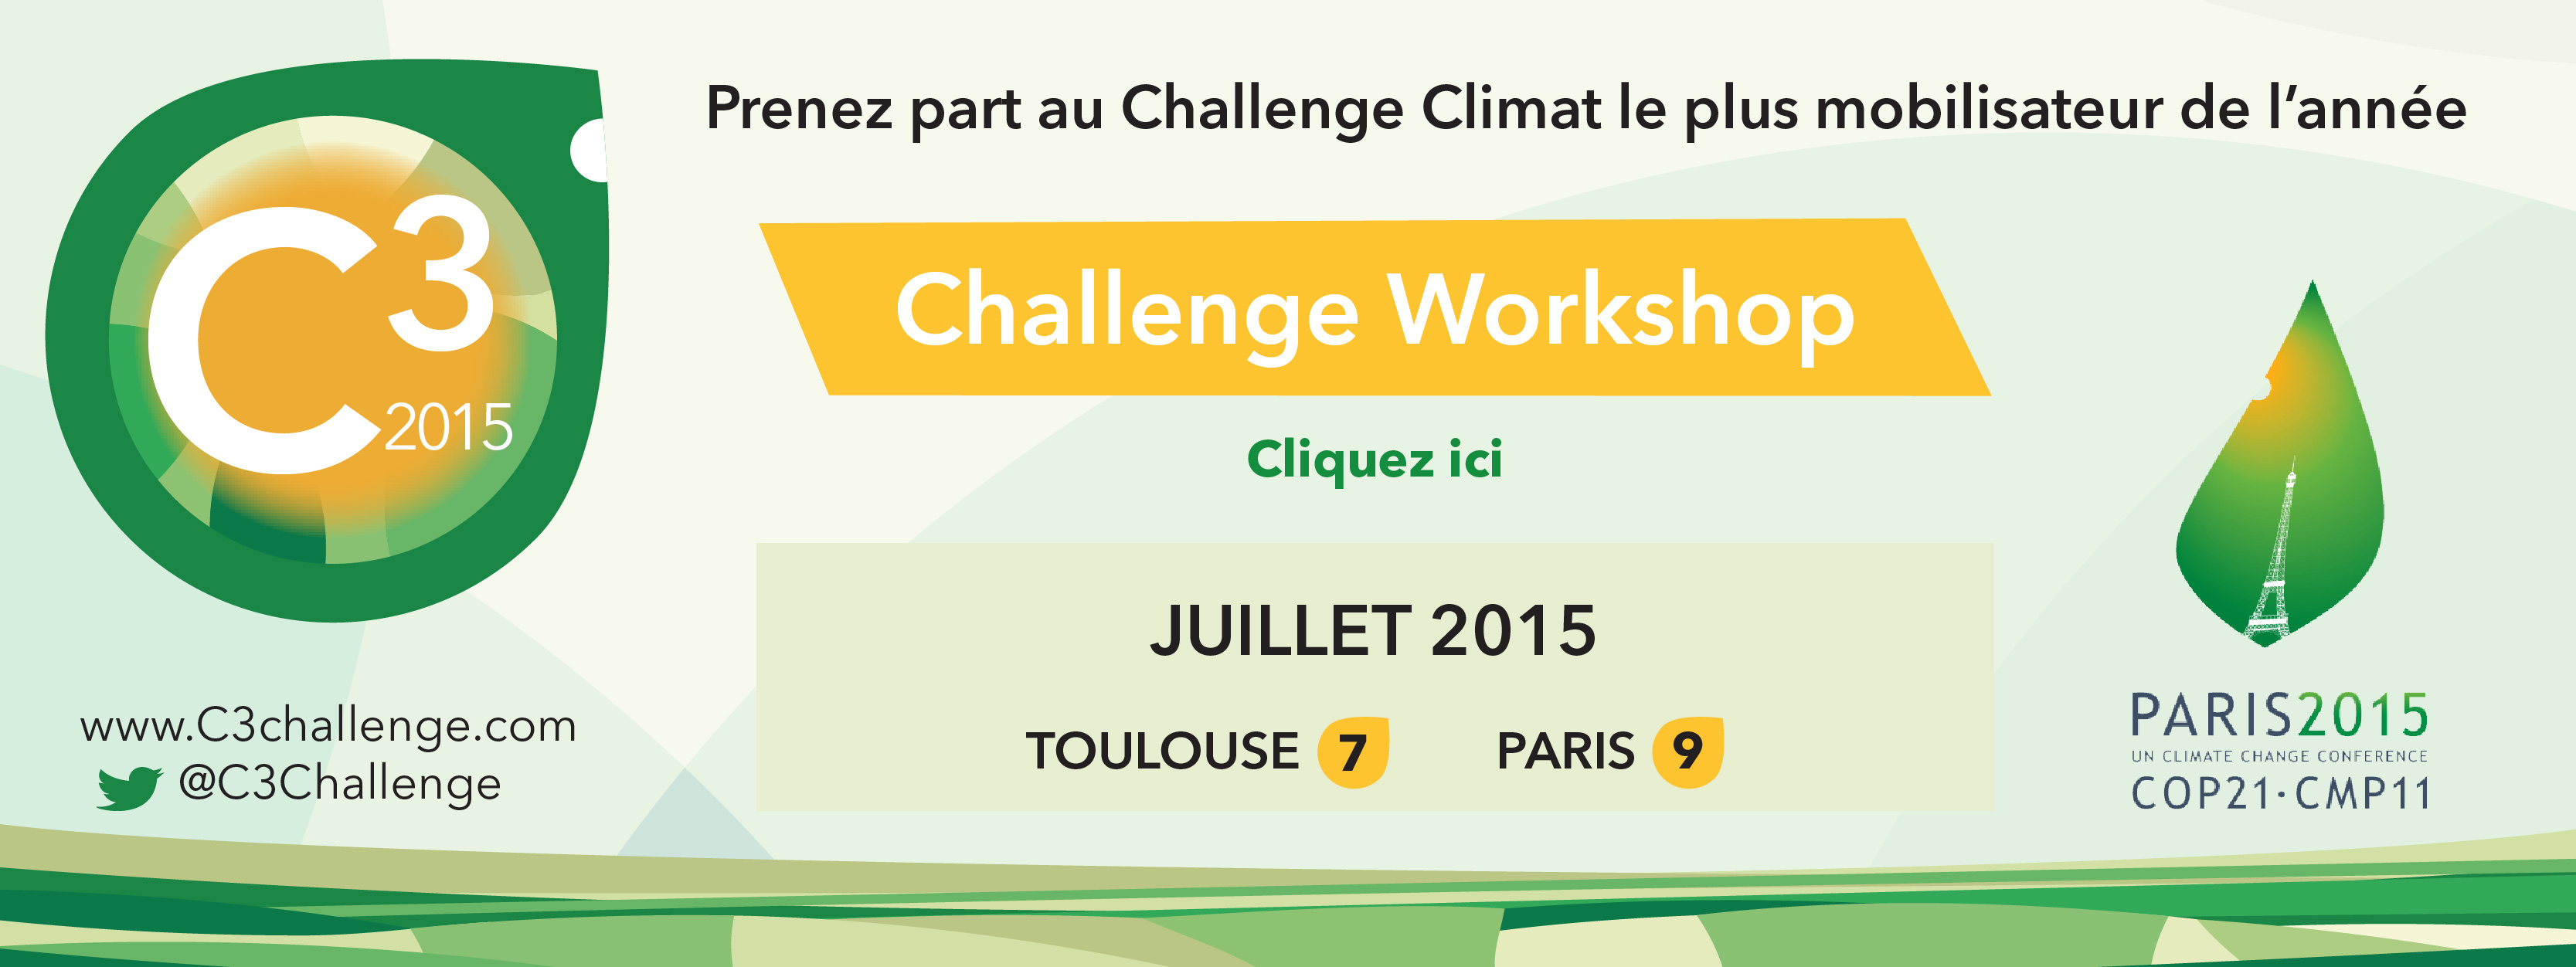 C3 - Challenge Workshop - phase 2 de la démarche